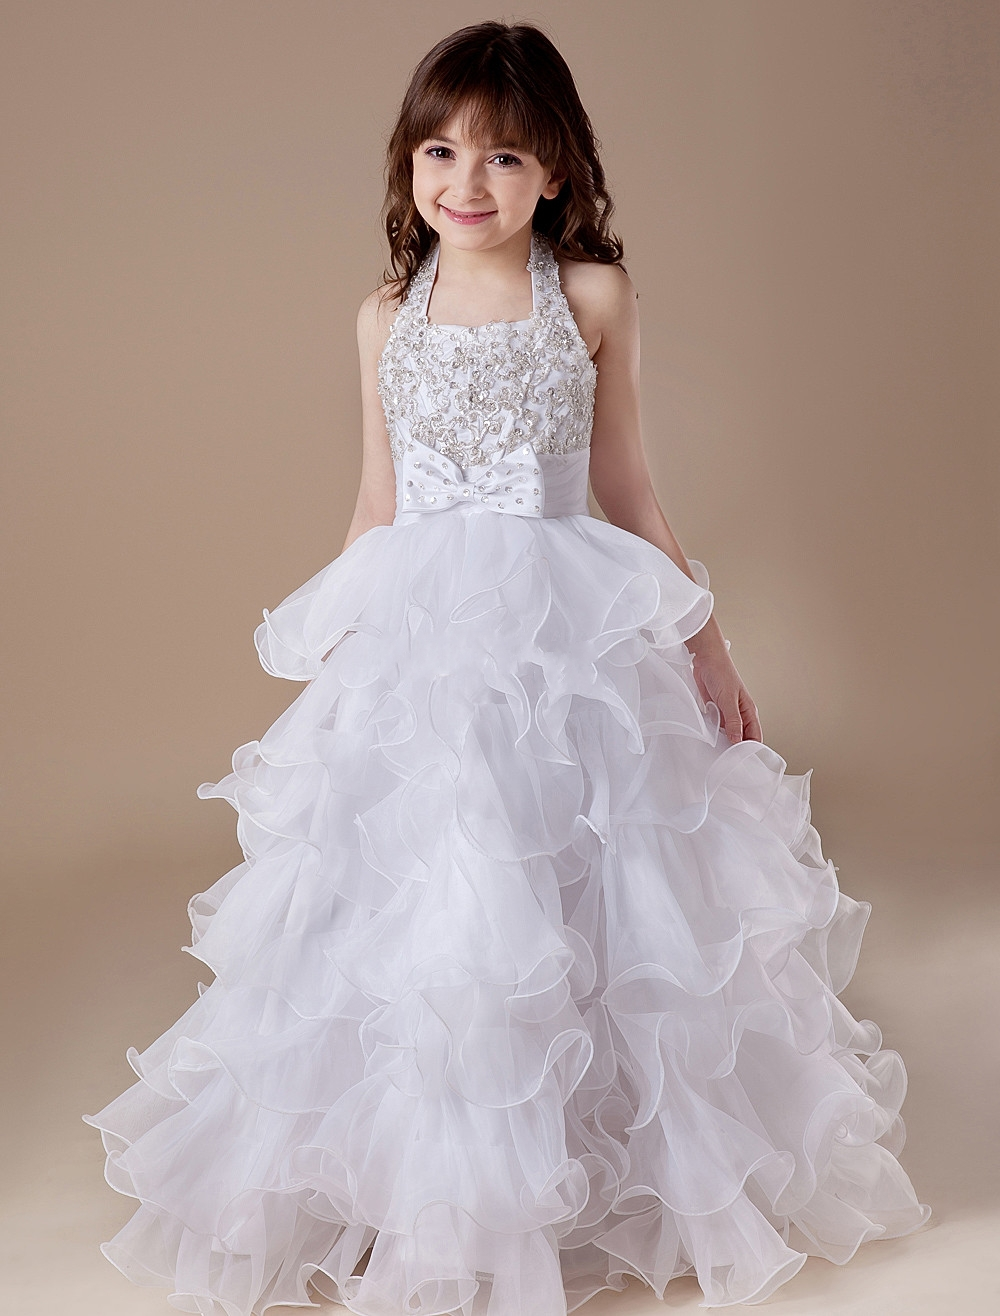 Custom Made Beaded Applique Halter Tiered Organza White Flower Girl